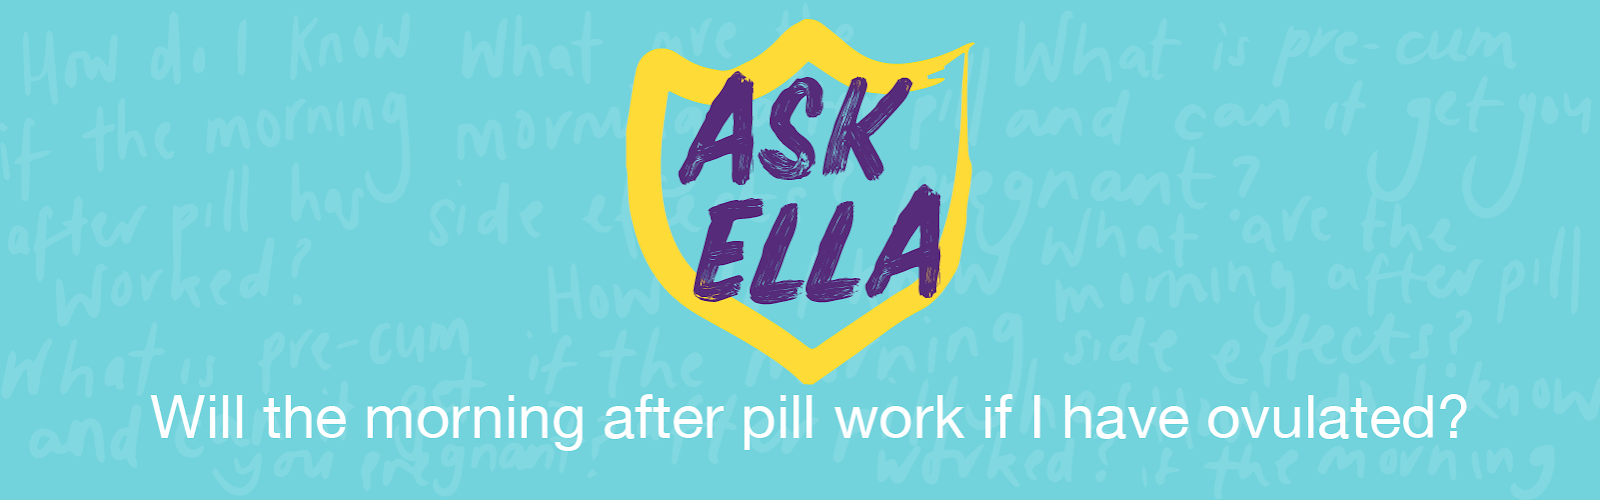 #AskElla_02_Blog_Will the morning after pill work if I have ovulated--.png